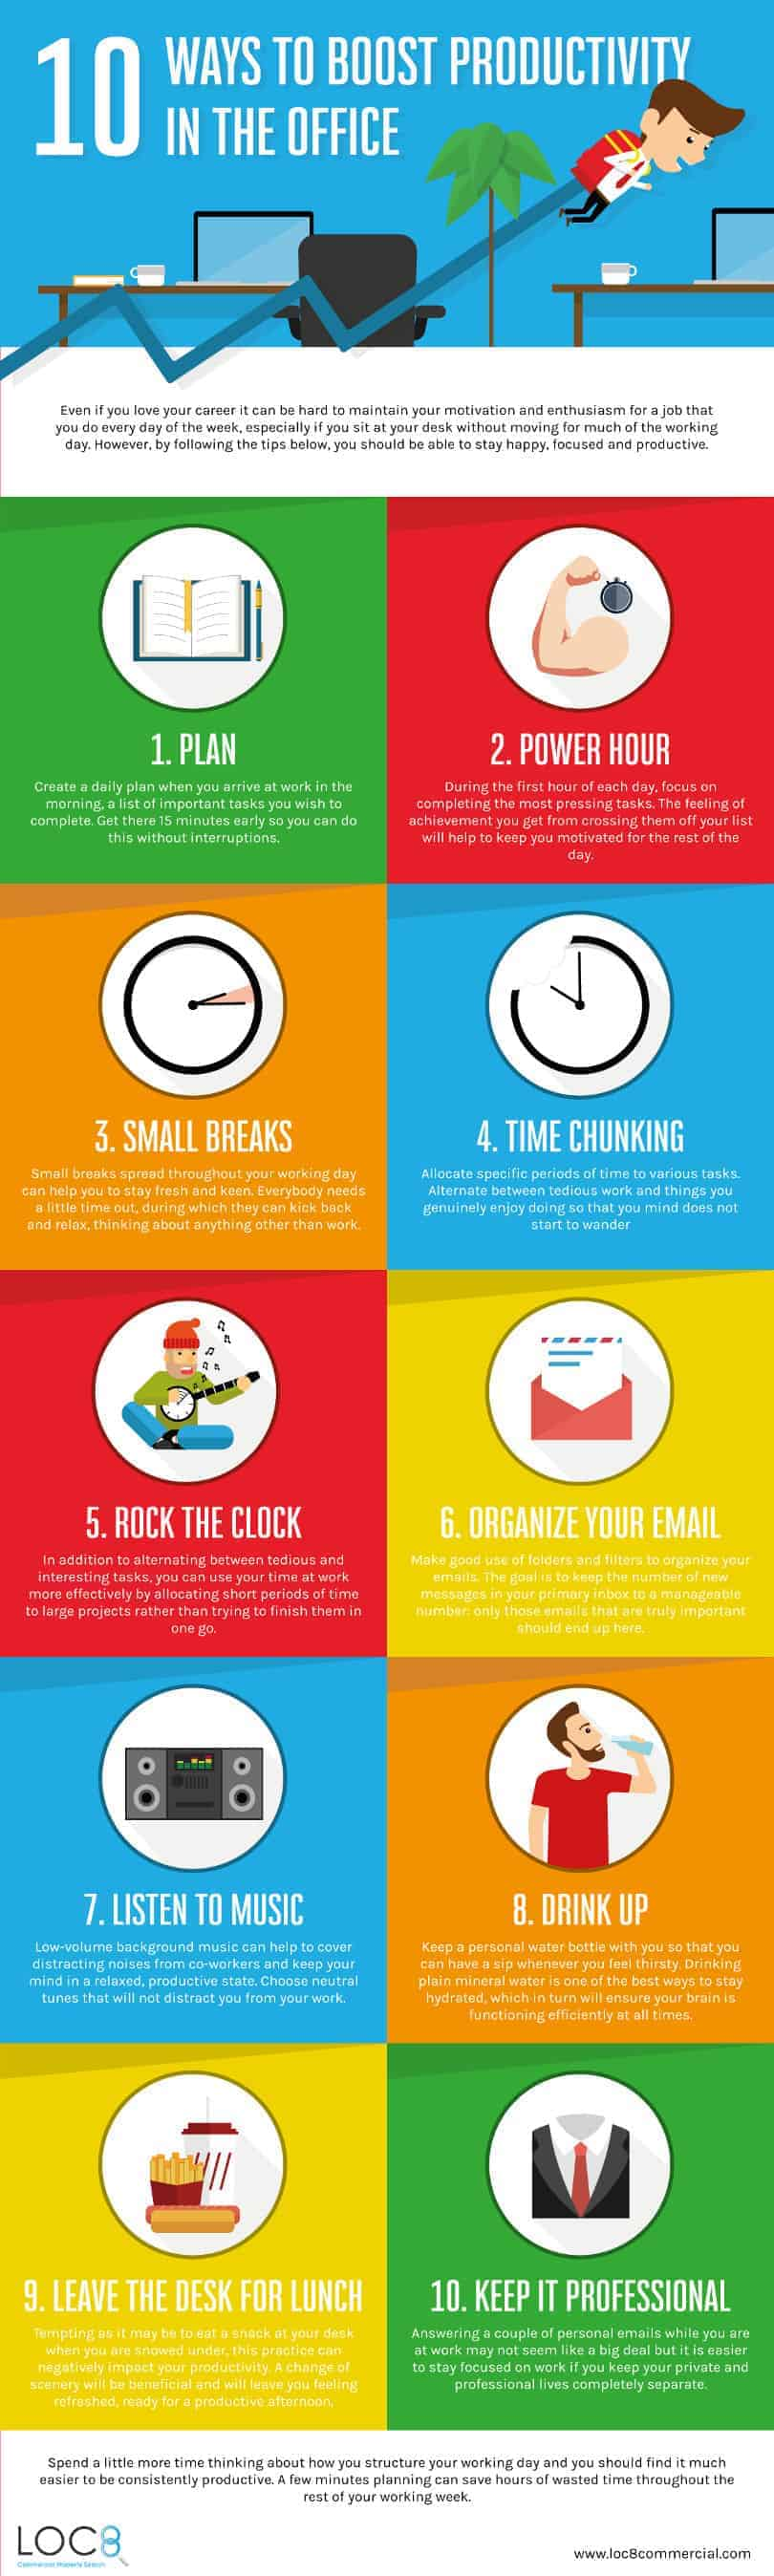 tips to boost office productivity